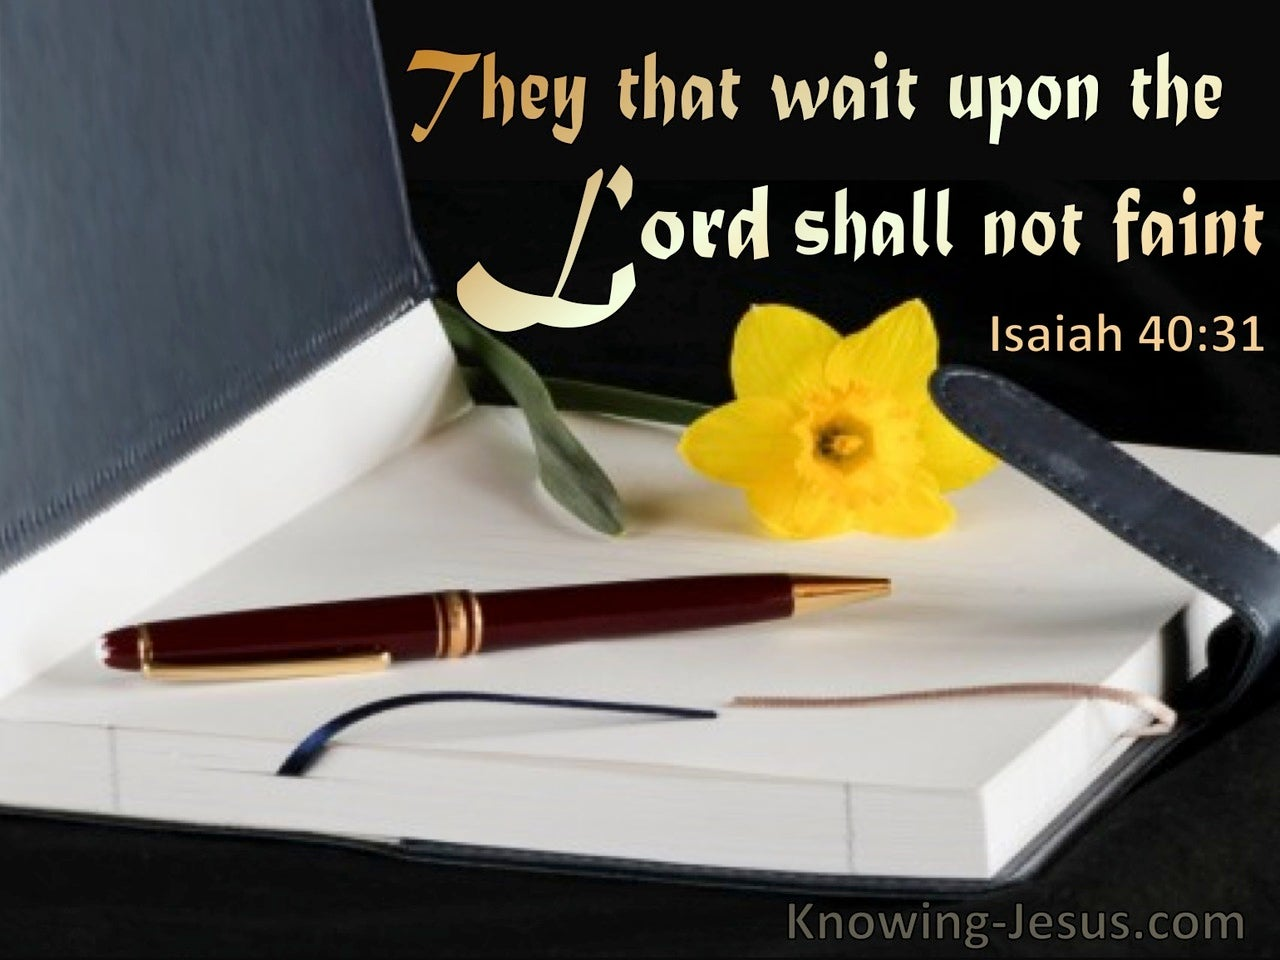 Isaiah 40:31 They That Wait Upon The Lord Shall Not Faint (utmost)07:20